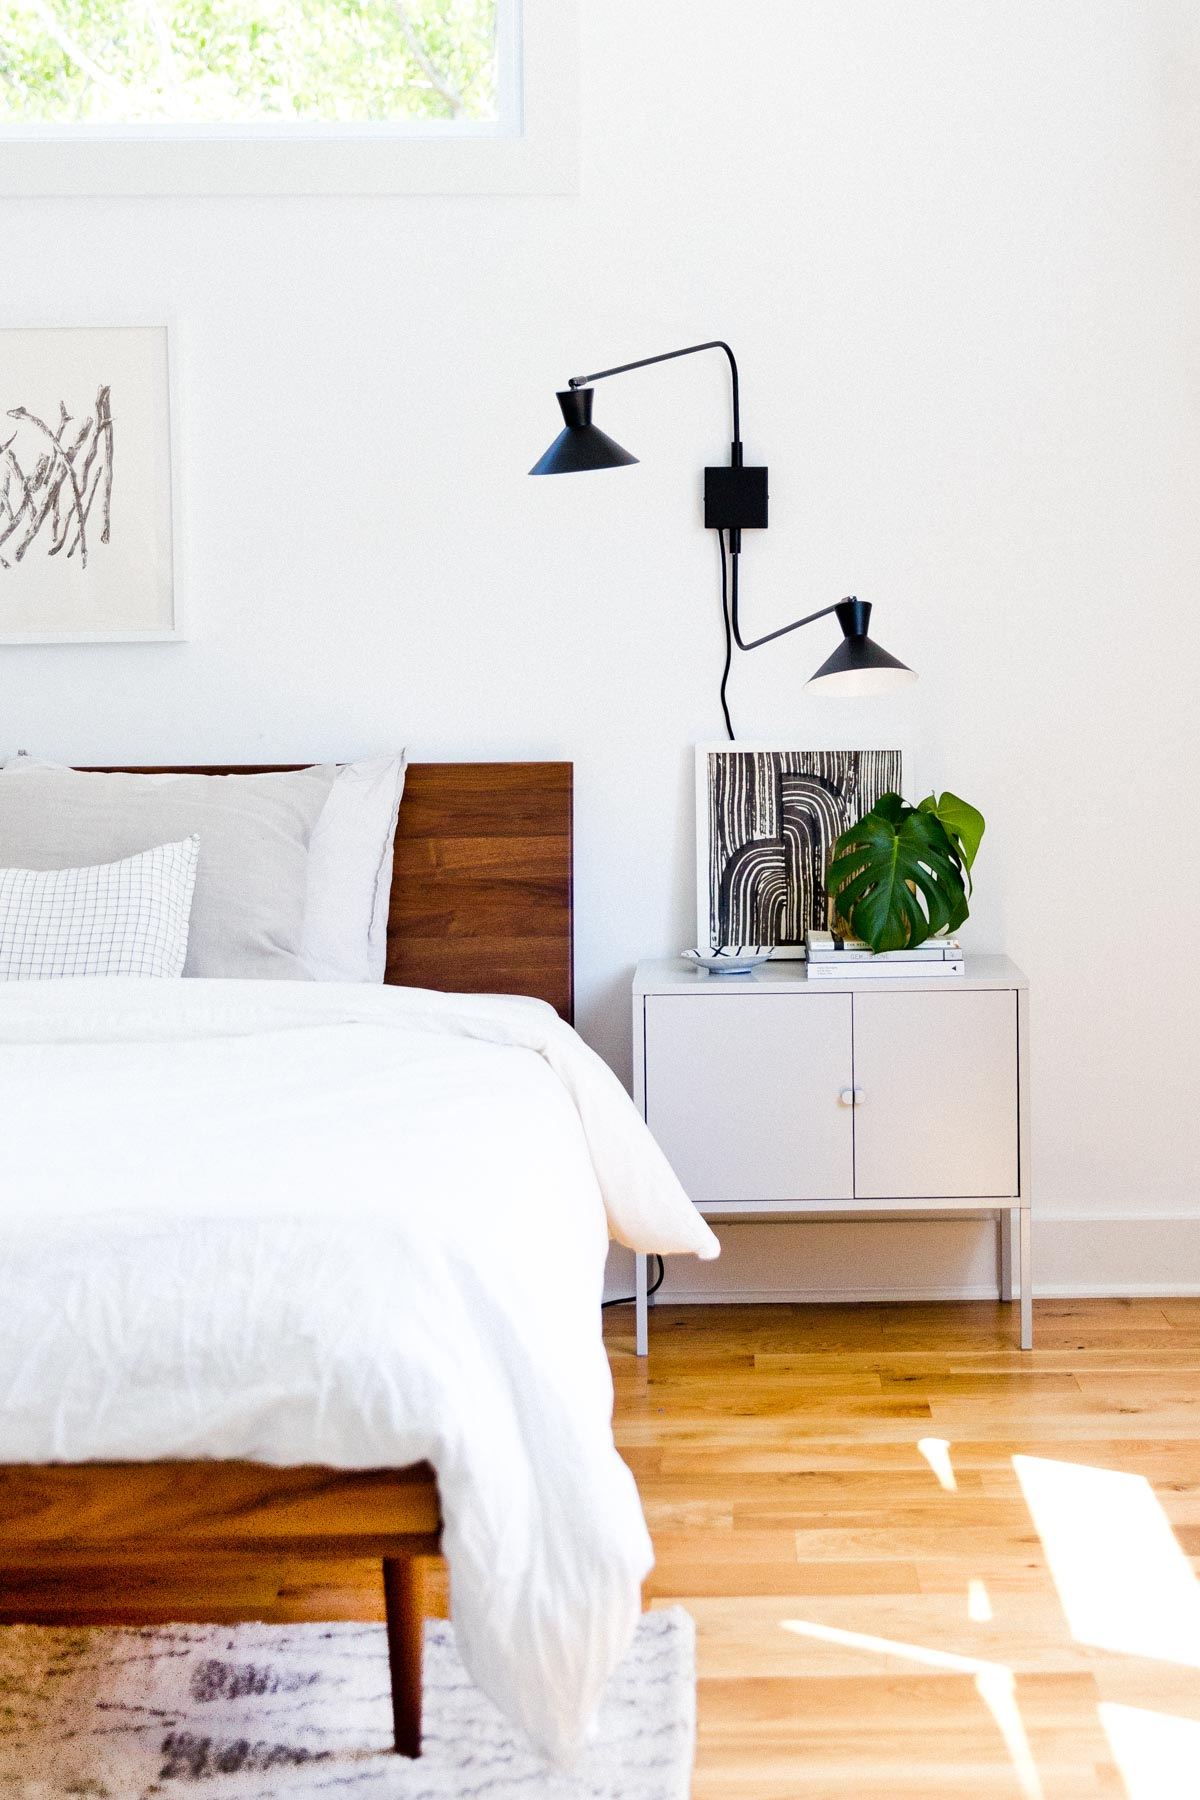 The Minimal(ish) Guide To Styling Your Nightstand. #masterbedroom #organicmodern #nightstand #roomstyling #interiors